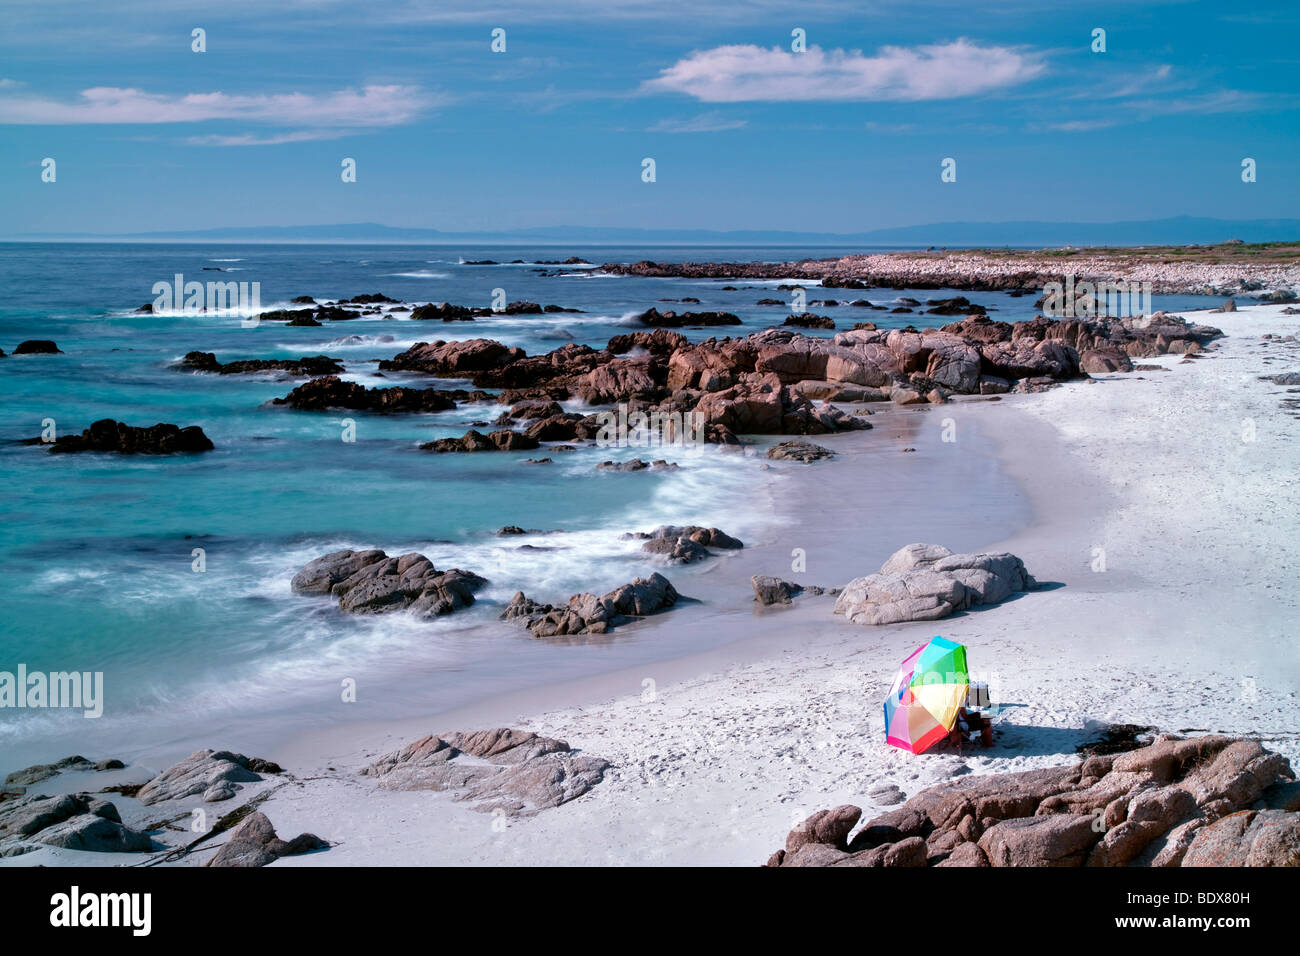 Beach umbrella and beach. 17 Mile Drive, Pebble Beach, California 17 Mile Drive, Pebble Beach, California - Stock Image